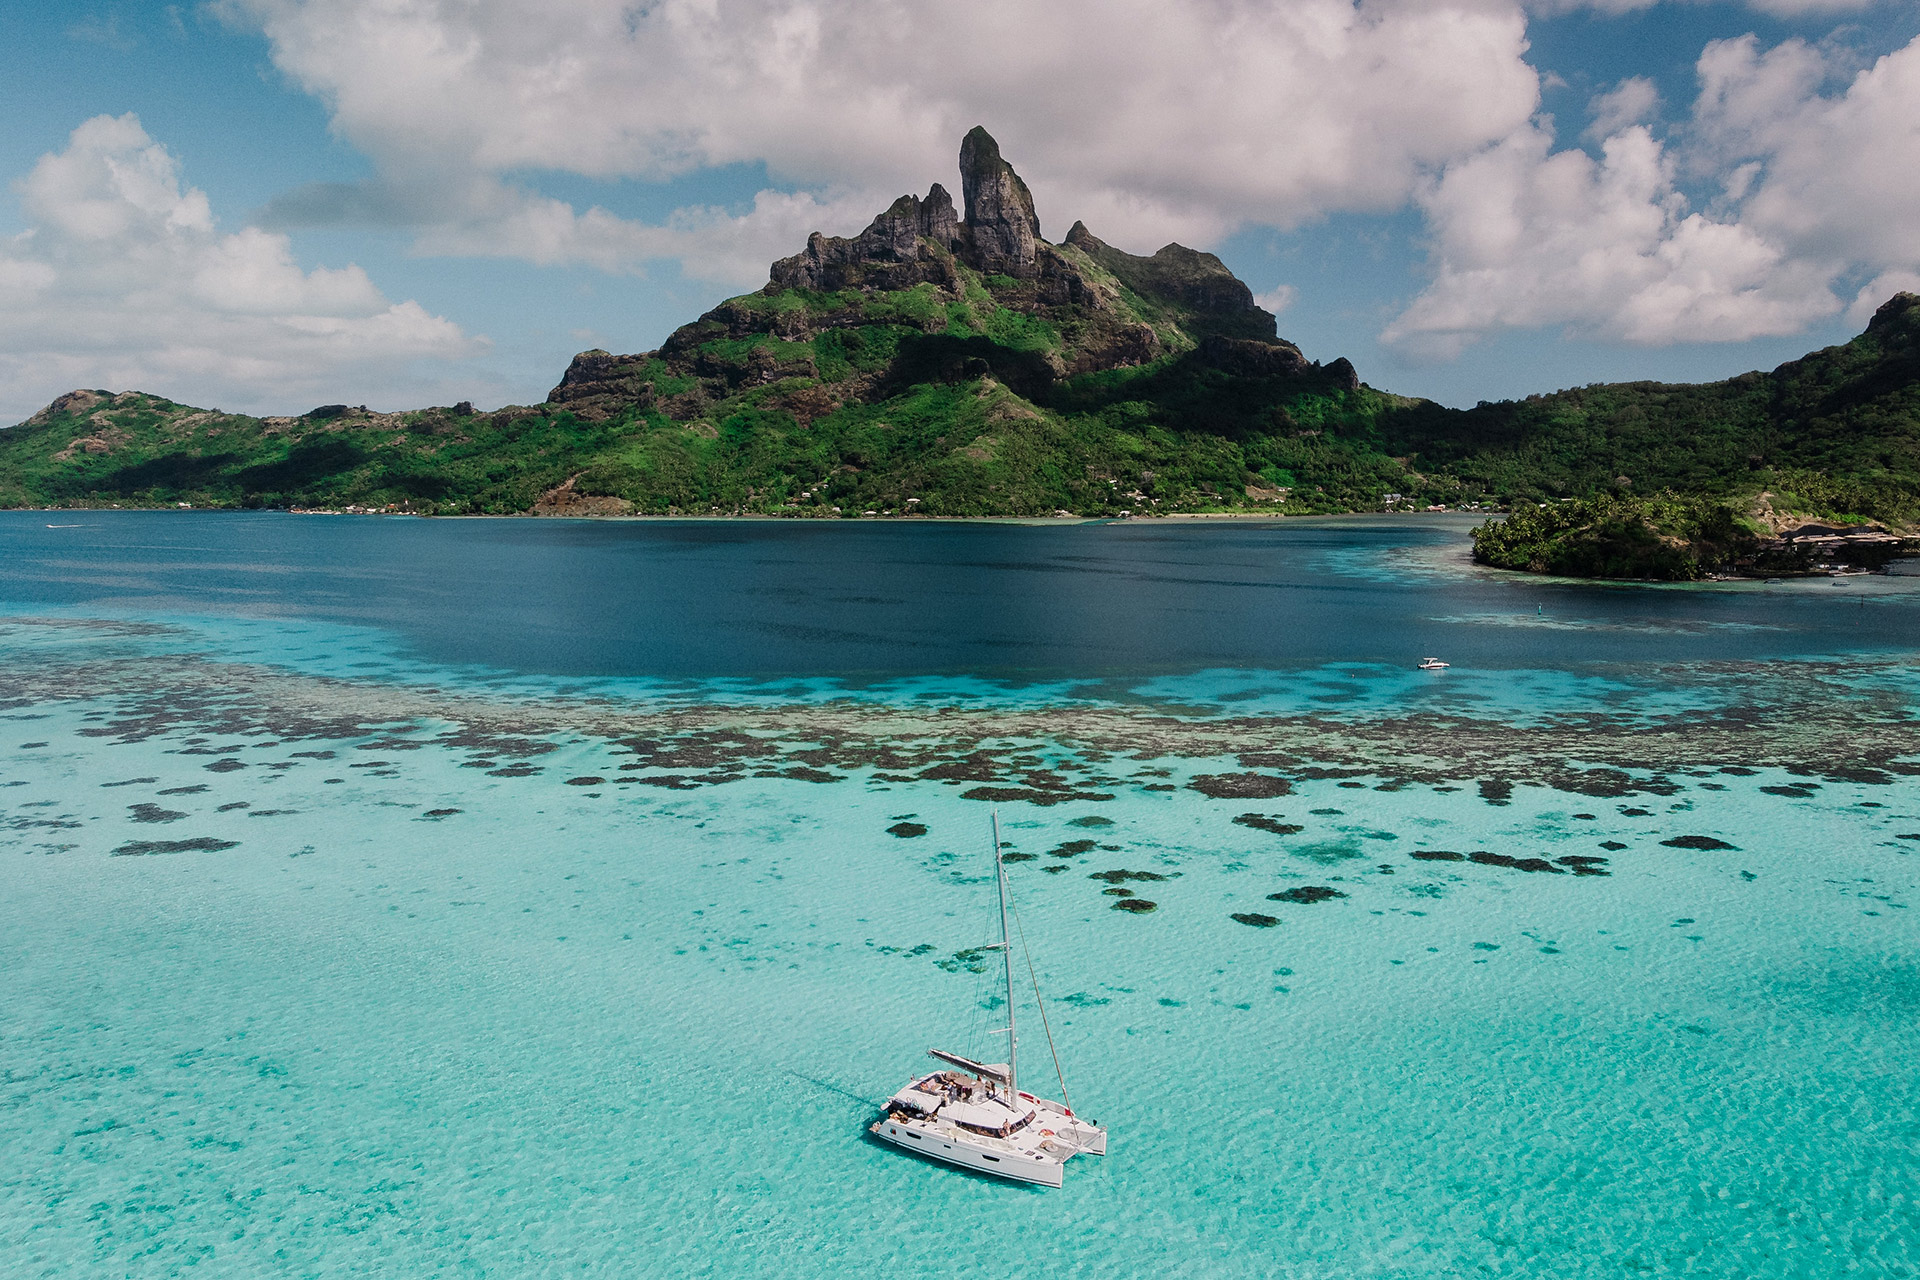 Image of an island with luxury boat floating on crystal clear water